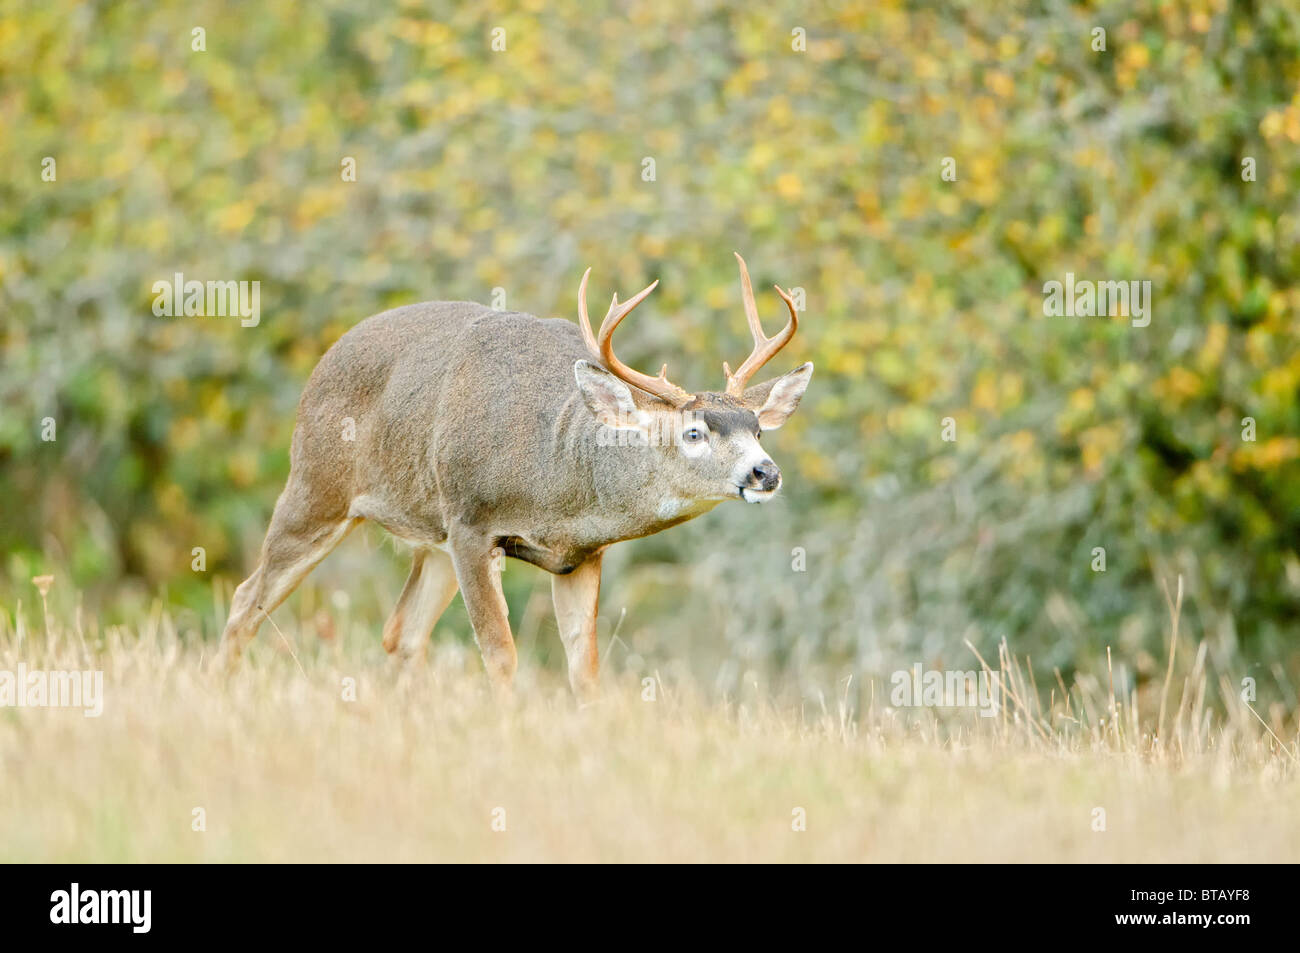 A blacktail deer buck is approaching a female during the breeding season in autumn. - Stock Image